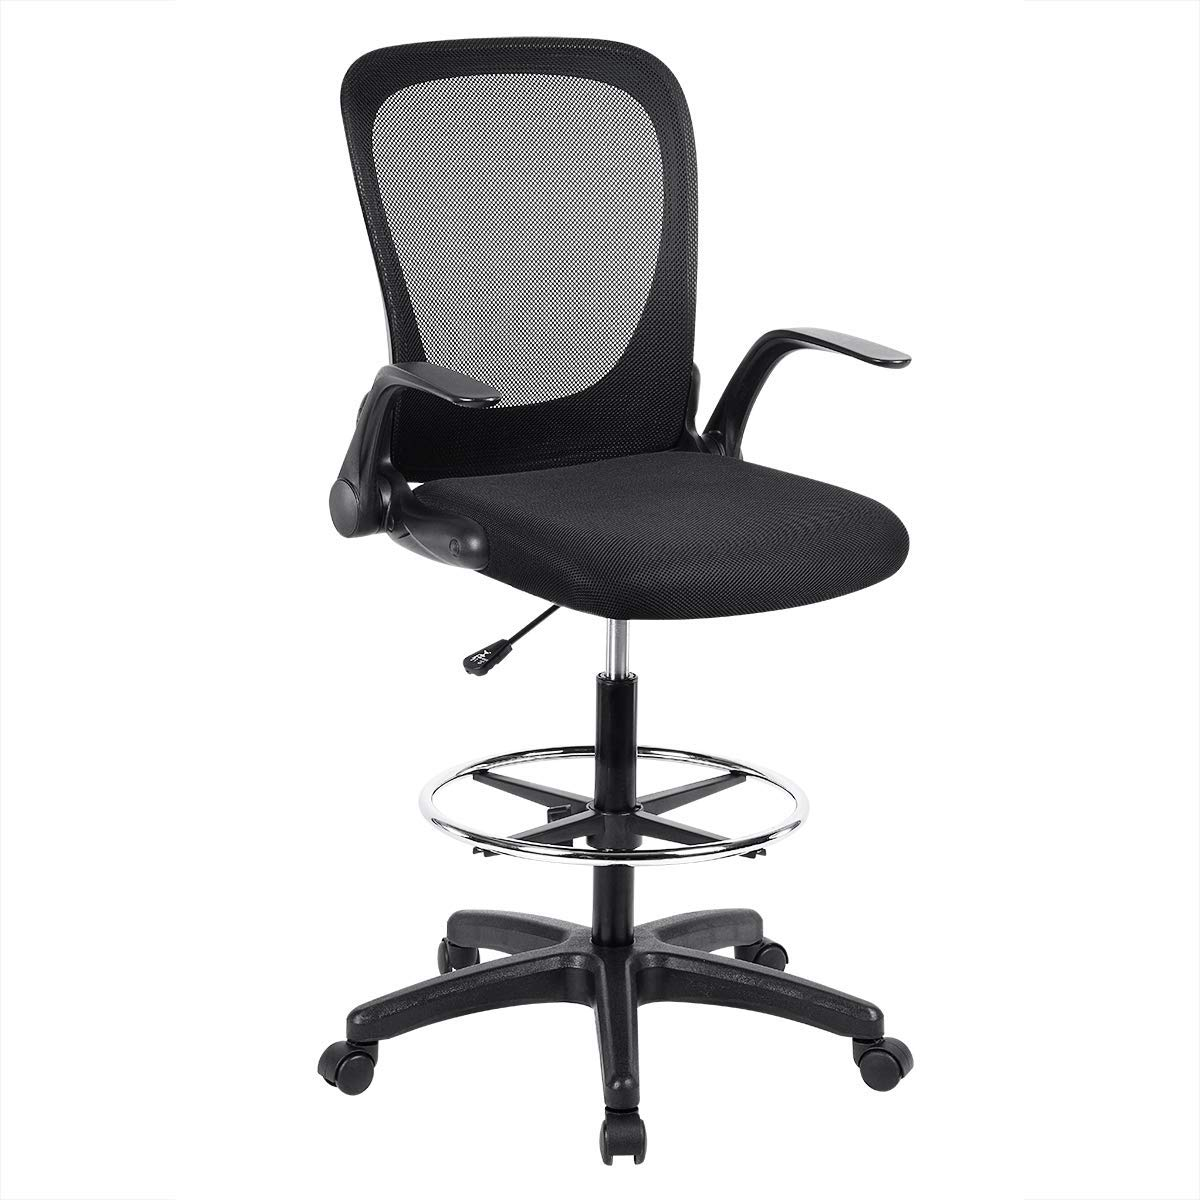 Ulikit Ergonomic Black Mesh Drafting Chair, Office Adjustable Chair Drafting Stool with Adjustable Foot Rest with Arm